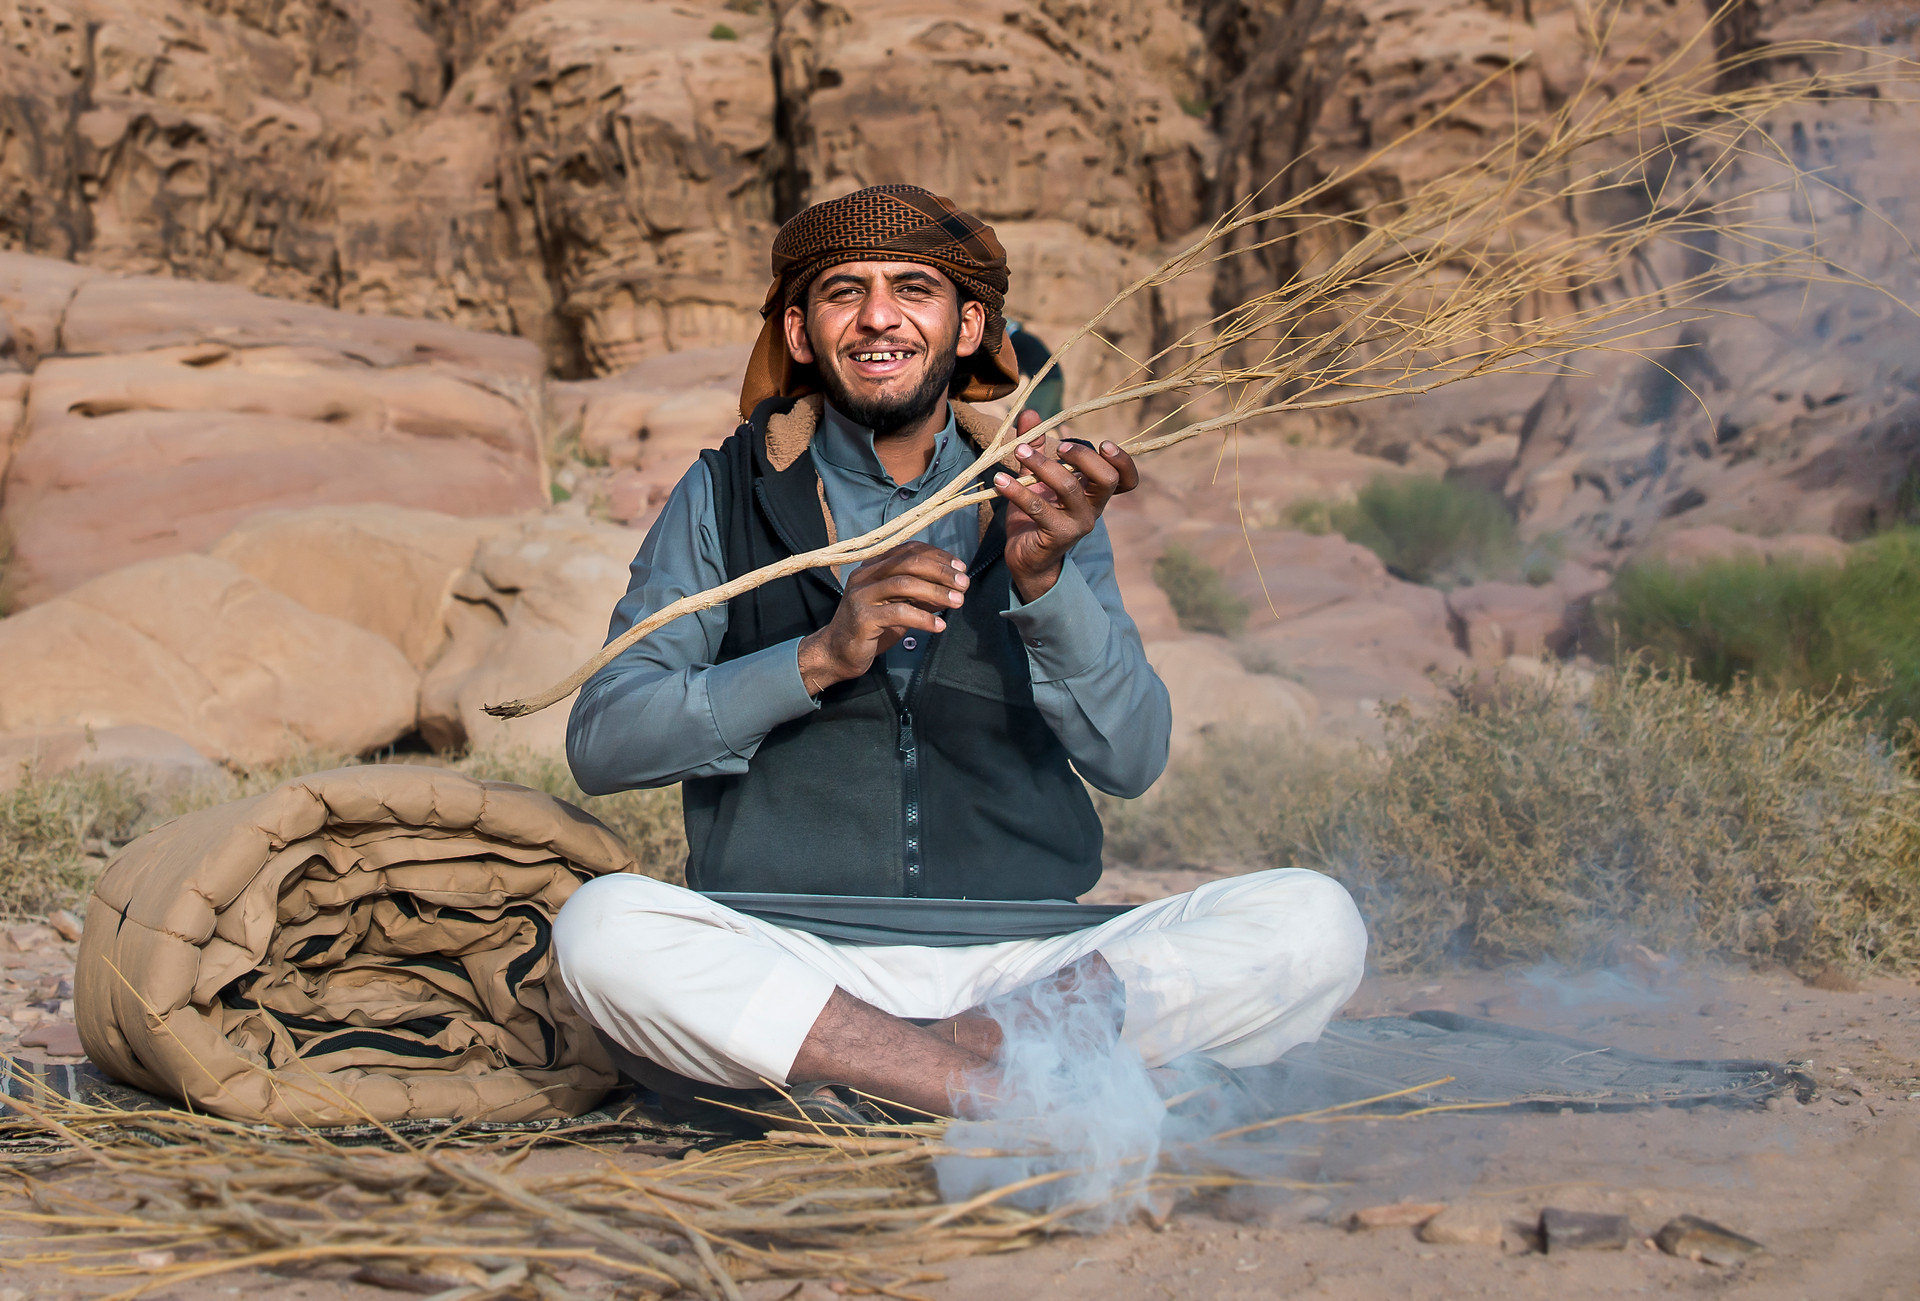 Cooking the bedouin way